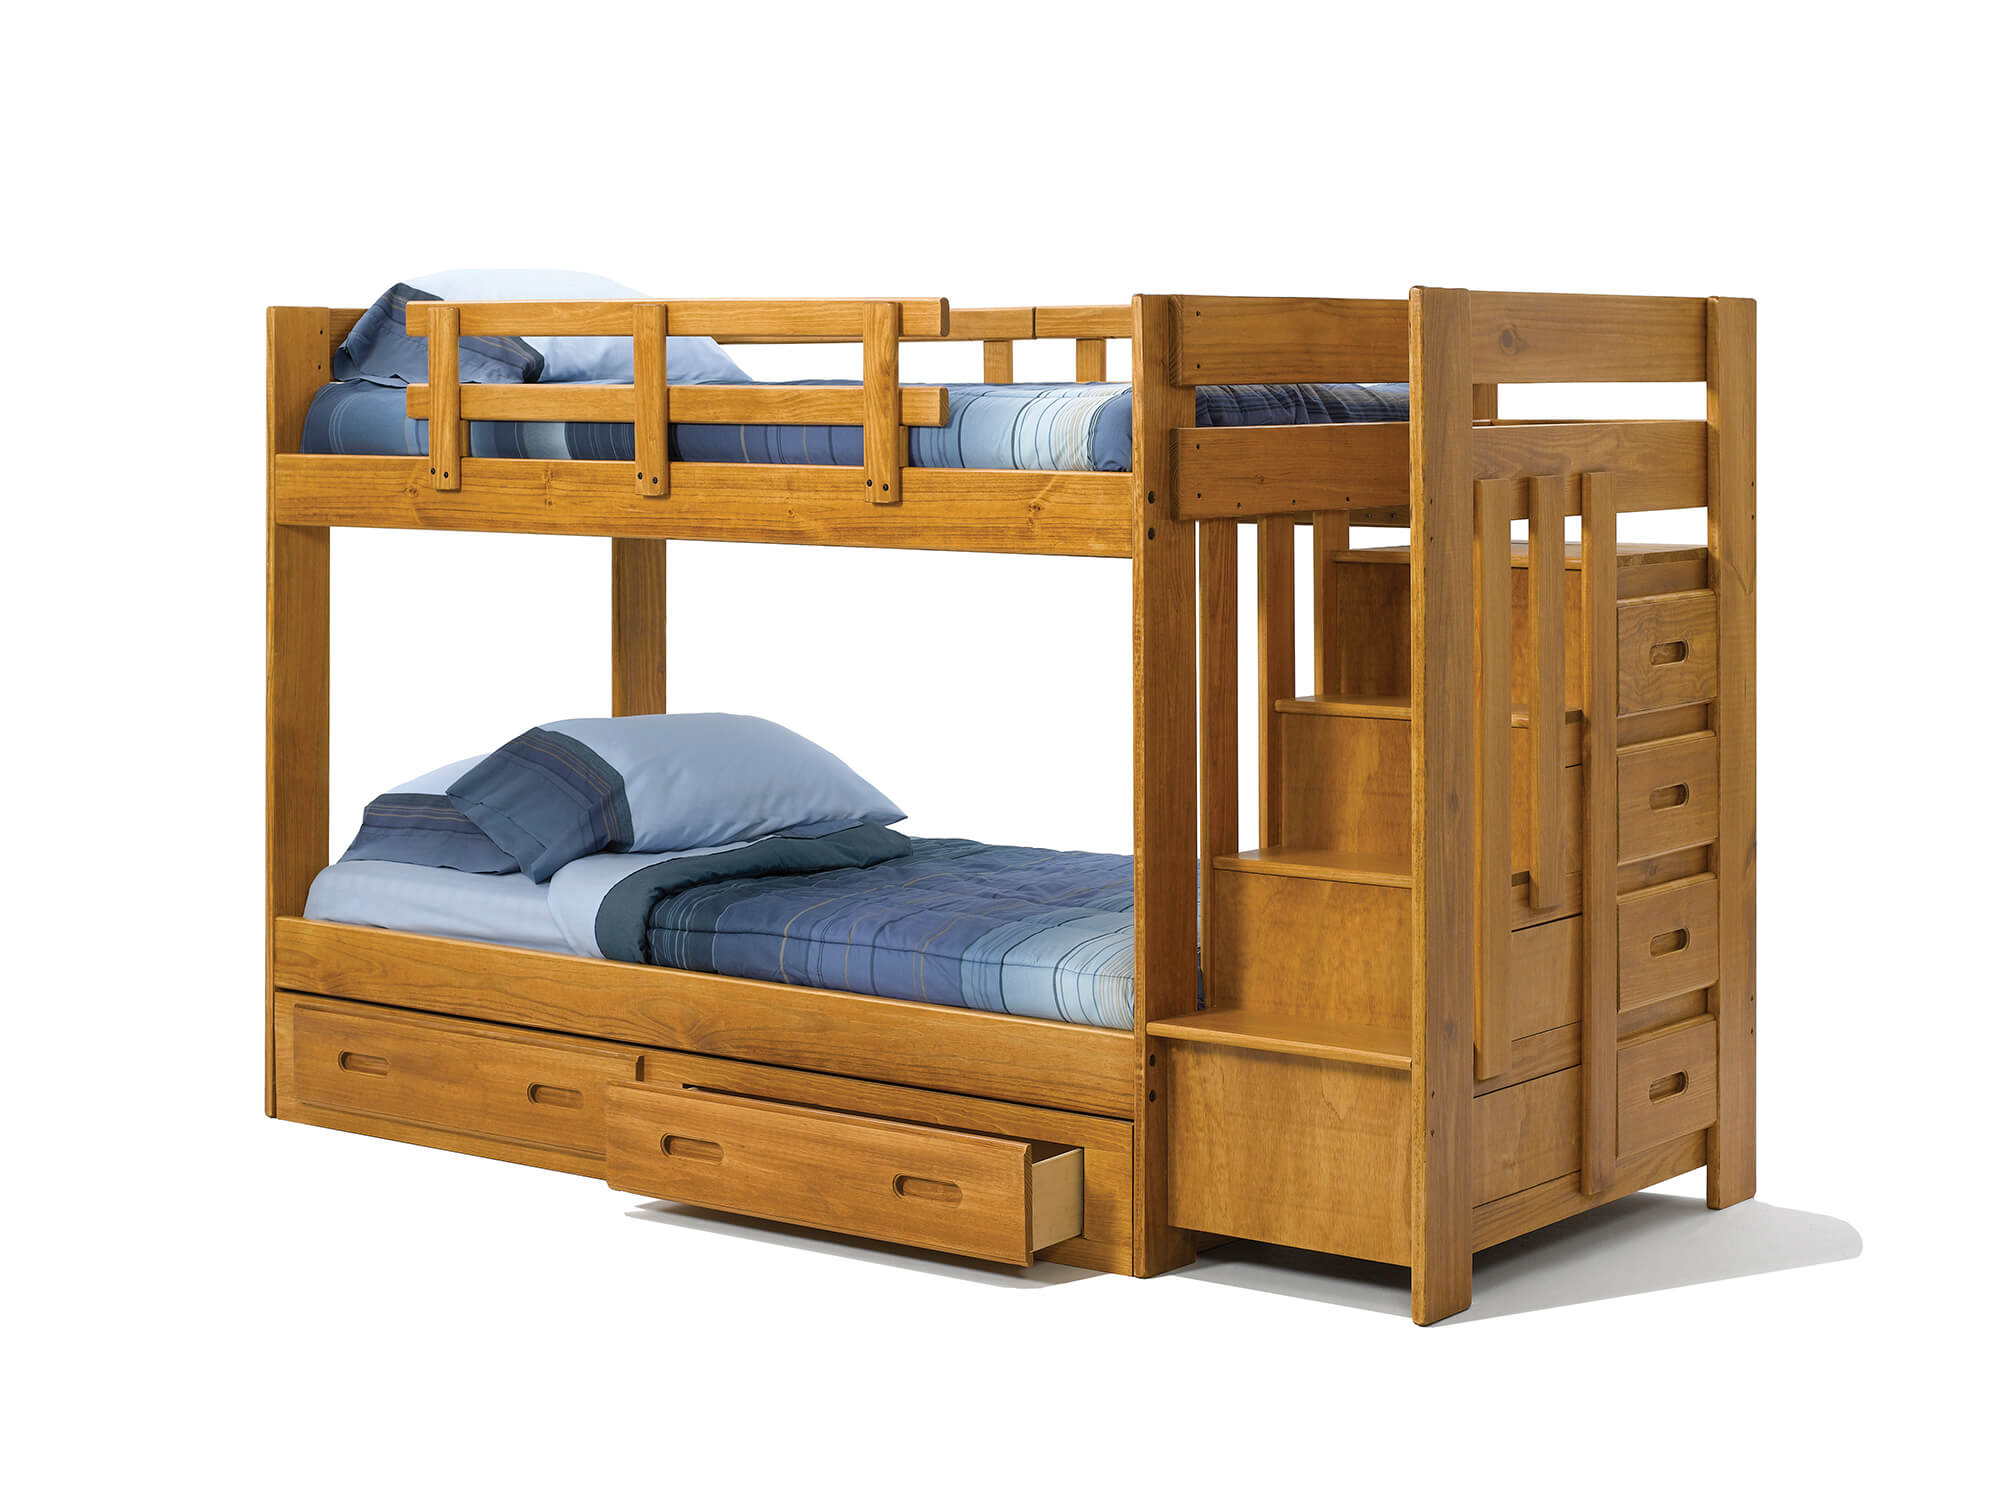 Woodcrest Stair Step Bunk Bed Kids Bunk Beds